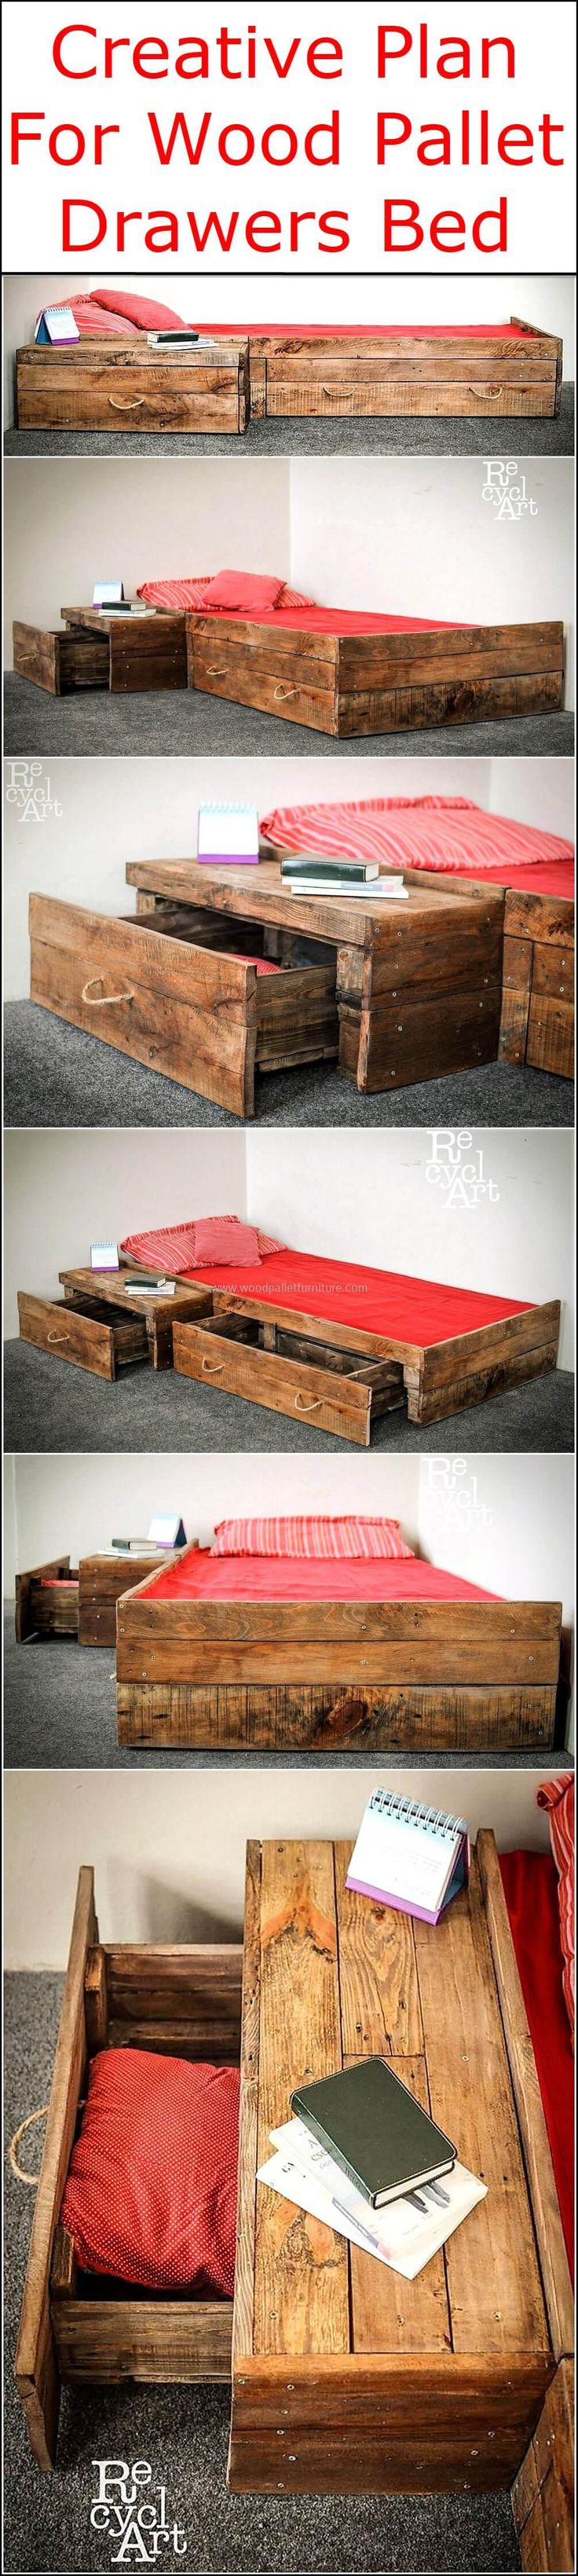 Have you ever planned to design out a usable bed structure through the artistic and unique transformation of recycled wooden pallet planks, if not then think it now. It's time to shape out an amazing and creative bed frame with drawers to meet your bedding requirements at affordable rates.  #pallets #woodpallet #palletfurniture #palletproject #palletideas #recycle #recycledpallet #reclaimed #repurposed #reused #restore #upcycle #diy #palletart #pallet #recycling #upcycling #refurnish…